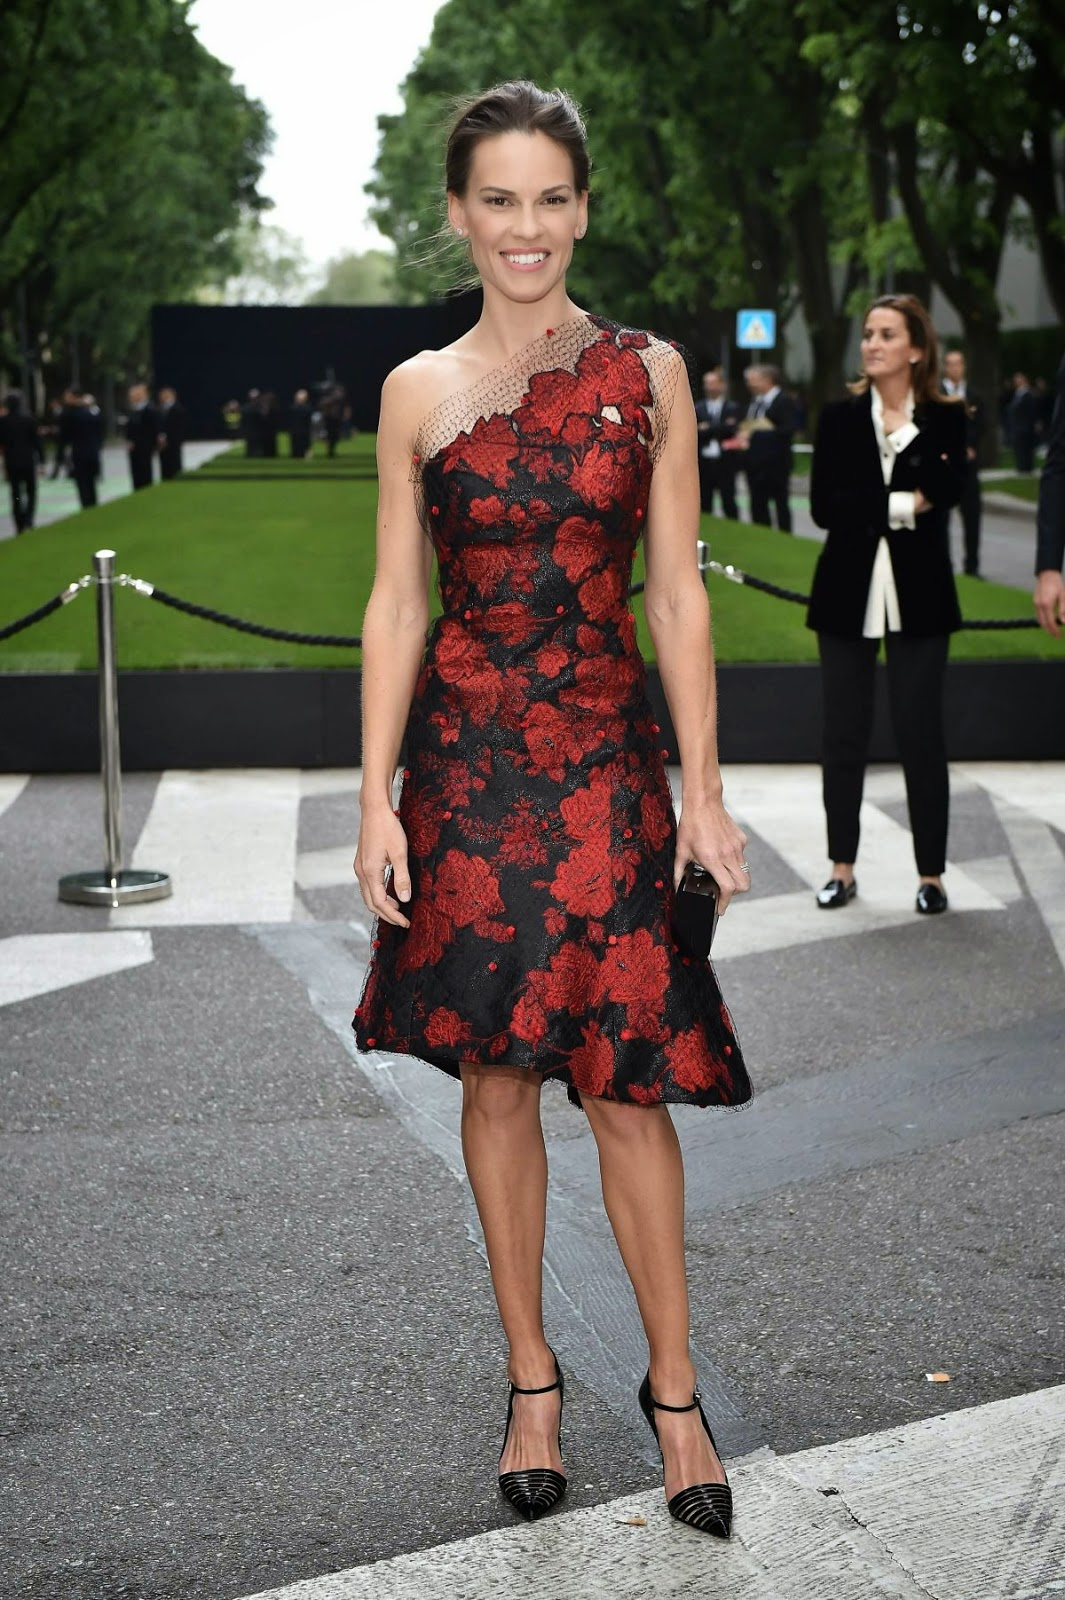 Actress, Producer @ Hilary Swank attends the Giorgio Armani 40th Anniversary Silos